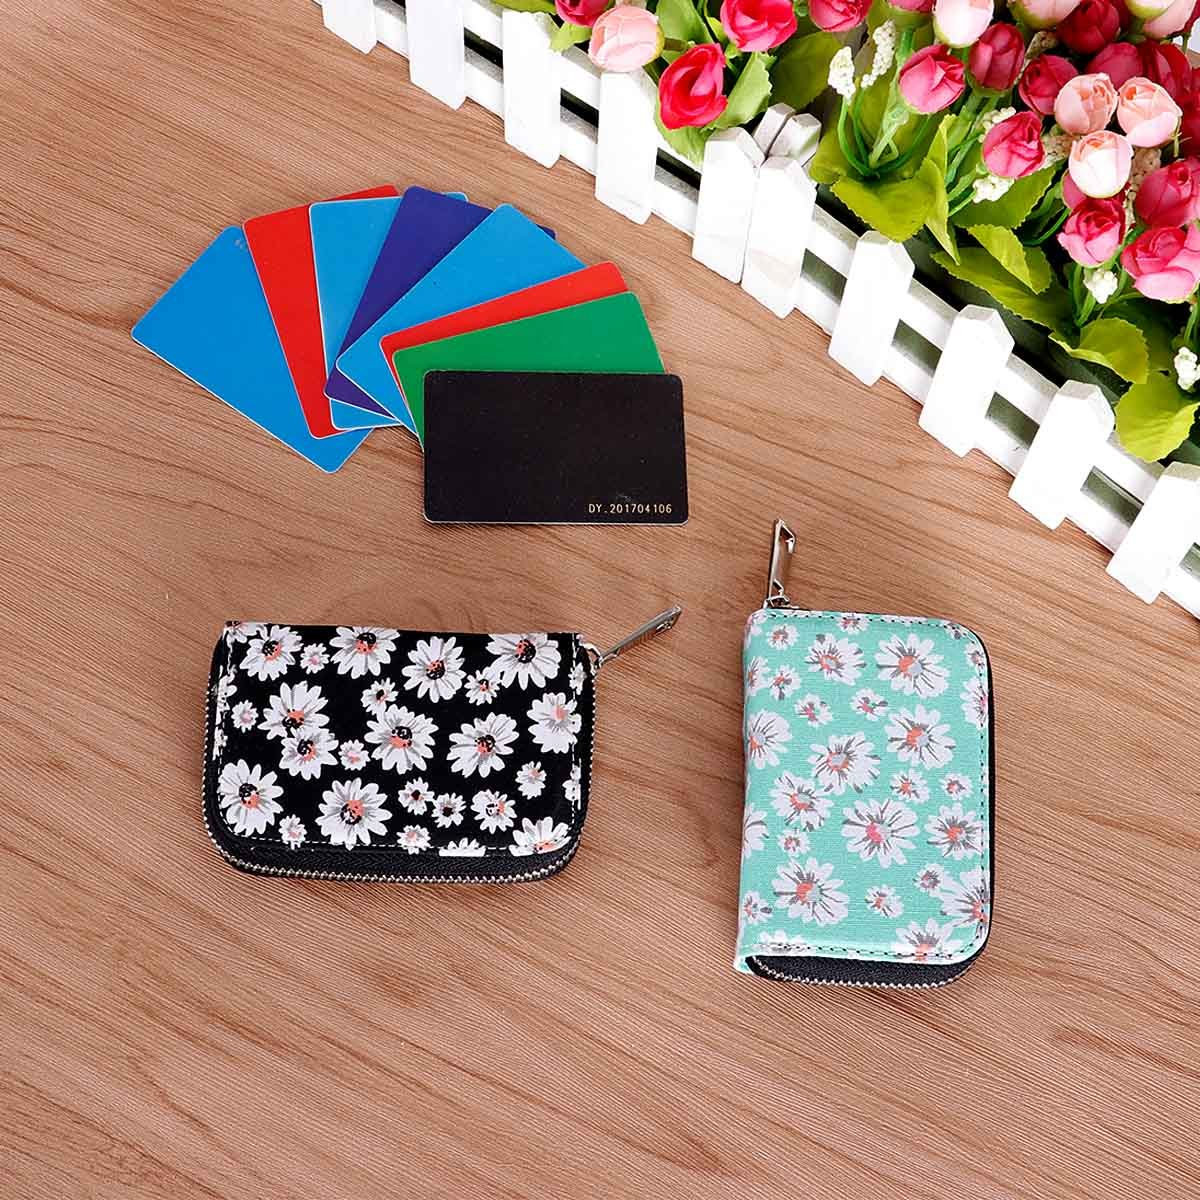 RFID Blocking Credit Card Holder Wallet Canvas Zipper Card Case Small Accordion Wallet for Women Ladies Girls